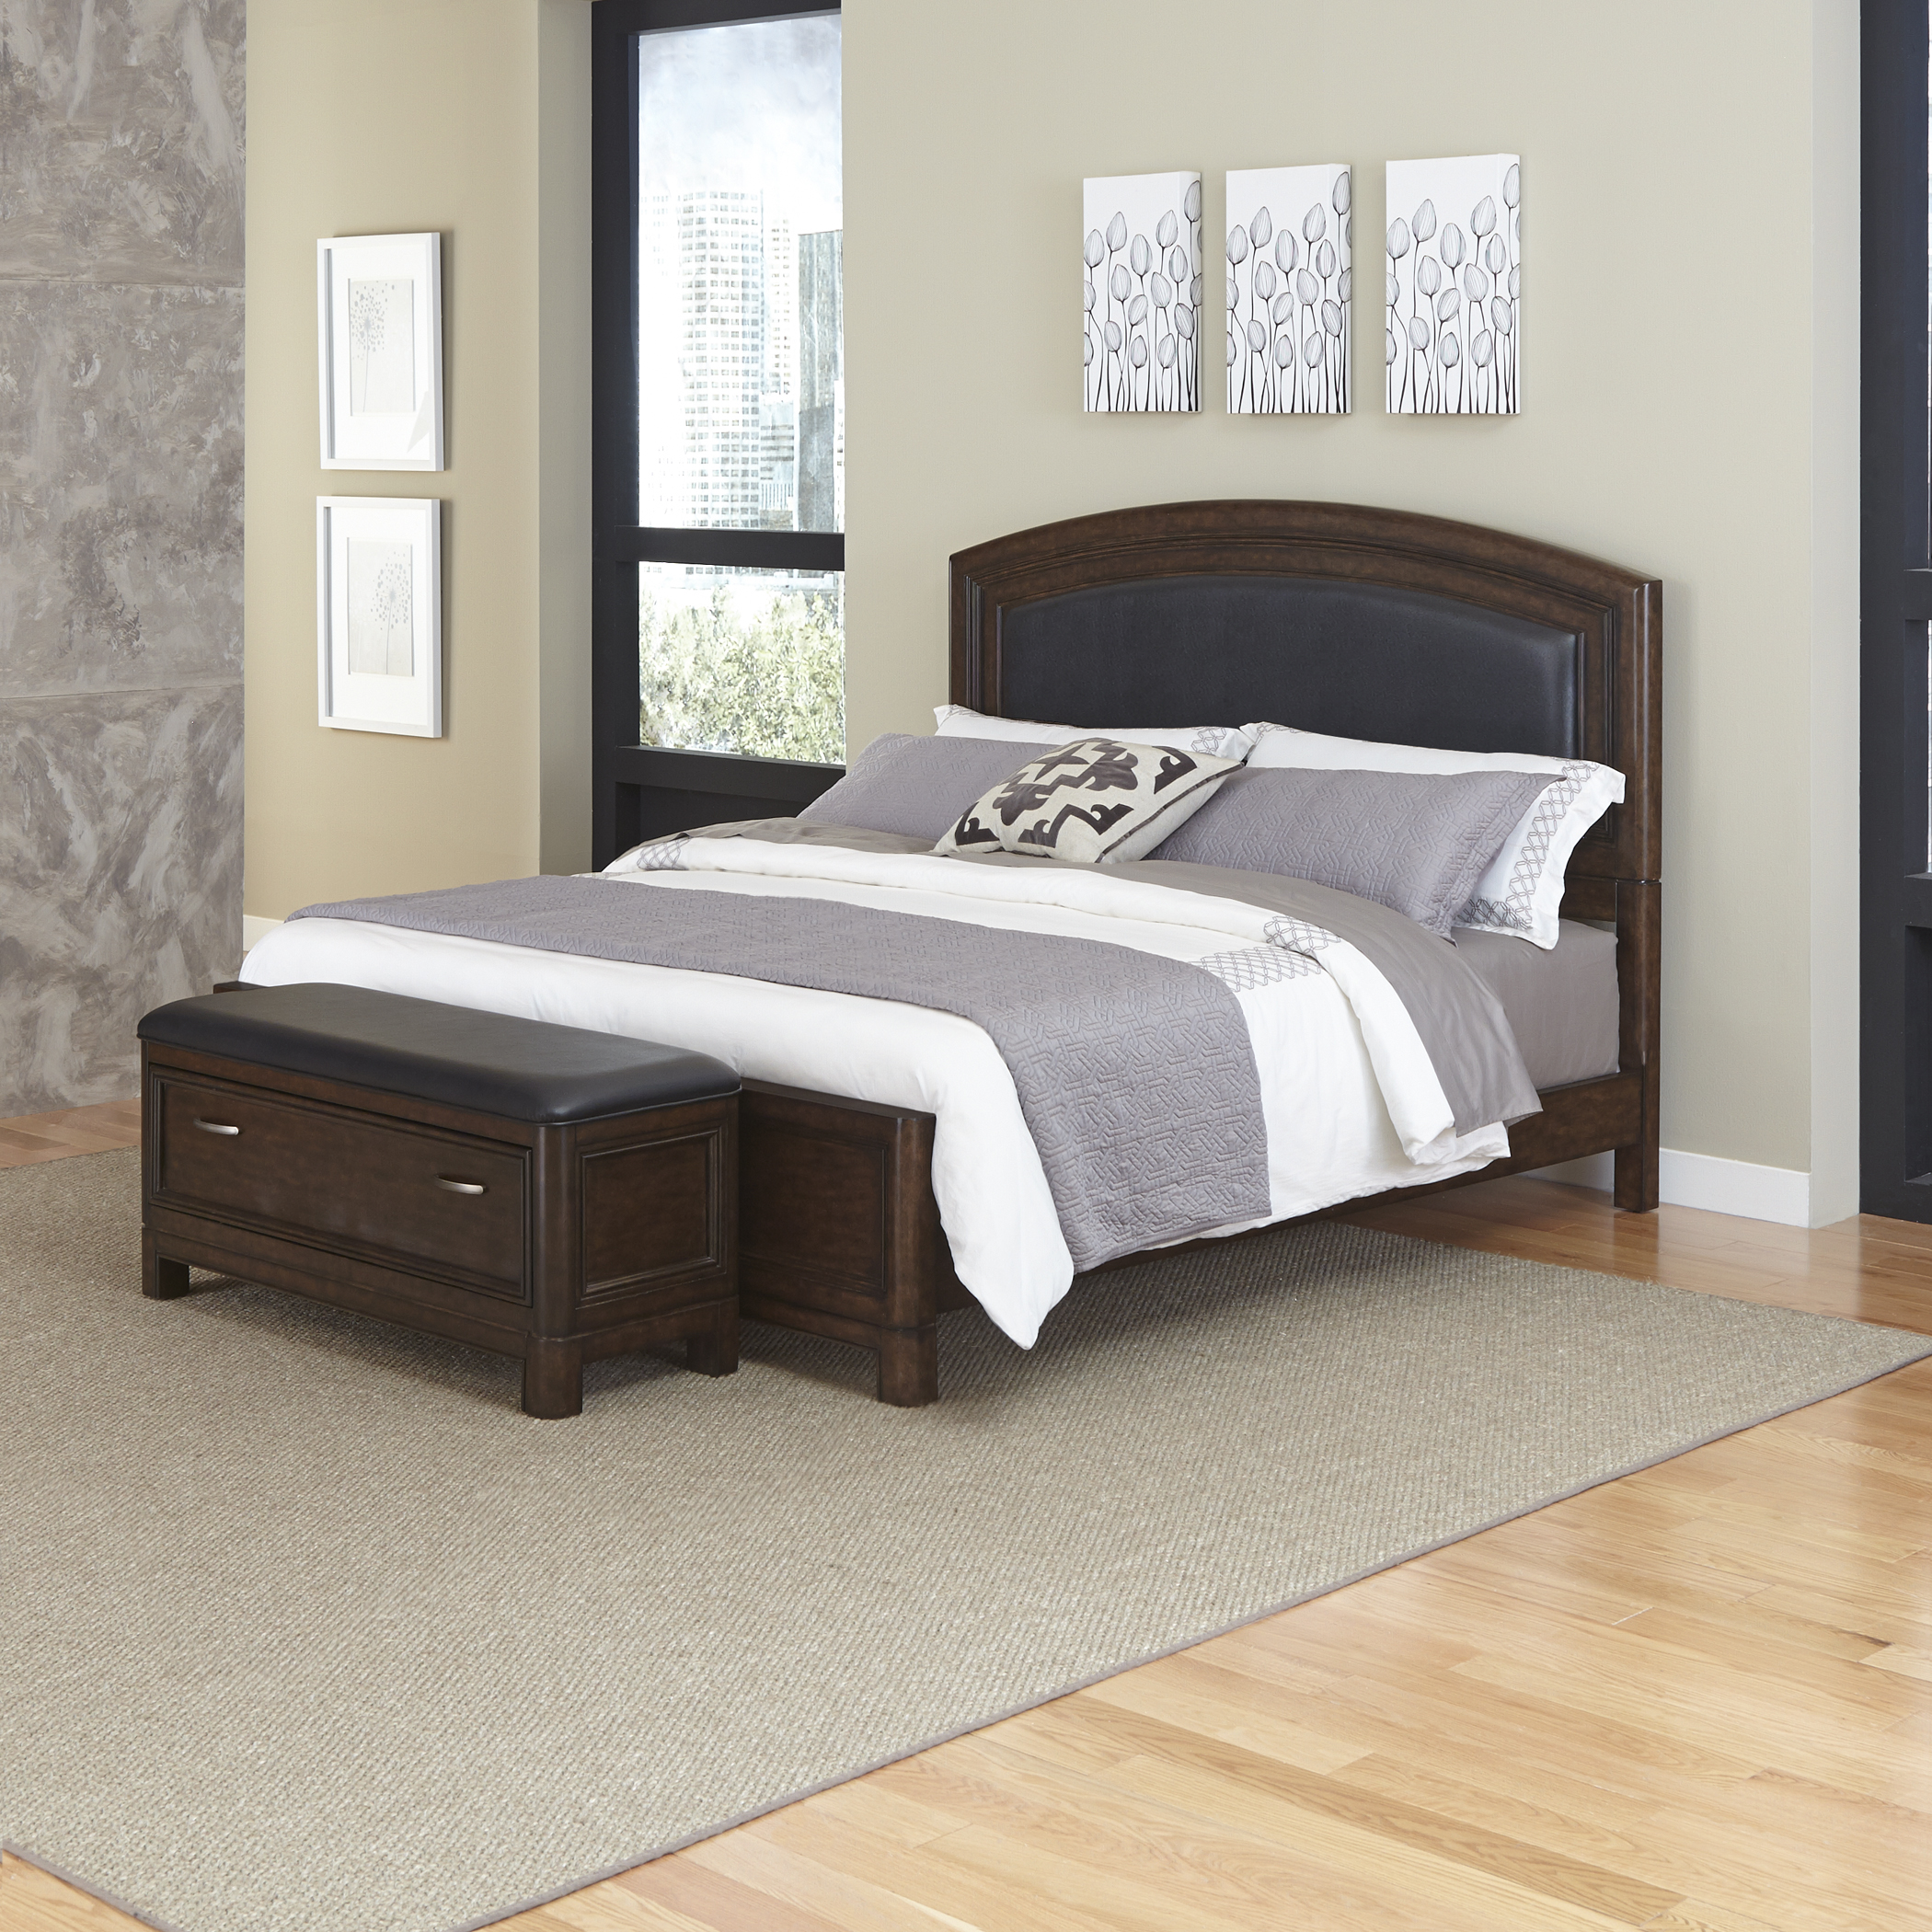 Bedroom Bench King Bed Home Styles Crescent Hill King Leather Upholstered Bed And